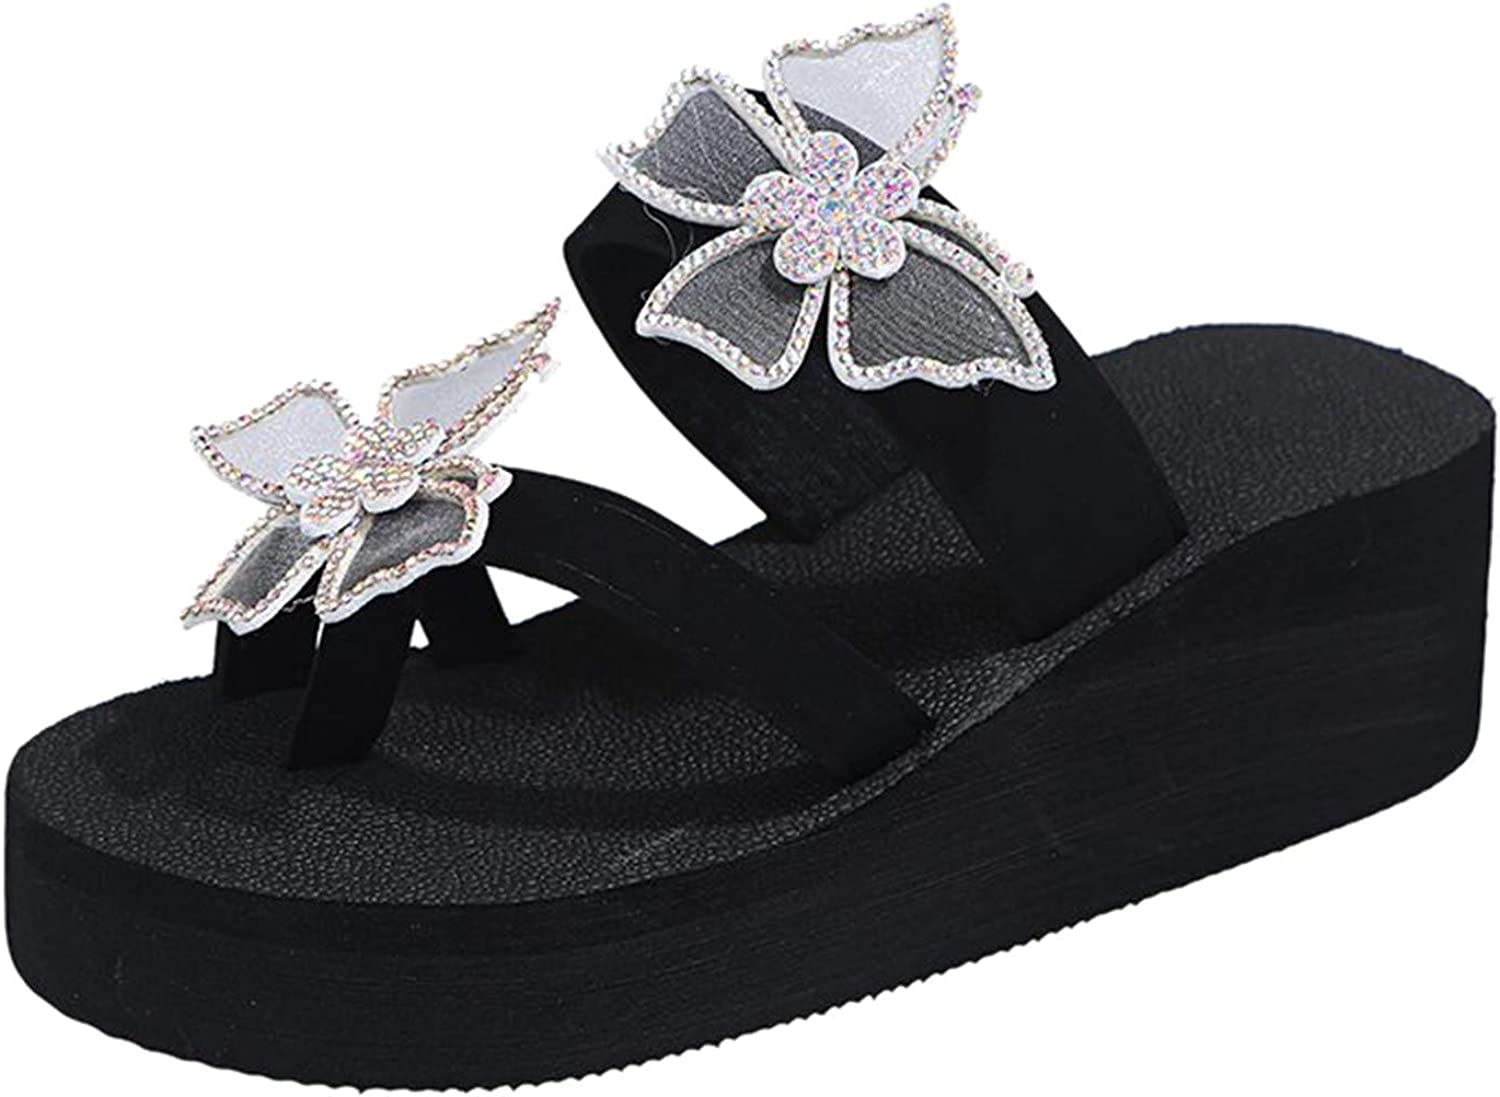 Sandals for Women Dressy,Women's 2021 Comfy Diamond Flat Sandal Shoes Casual Summer Beach Outdoor Slippers Roman Shoes